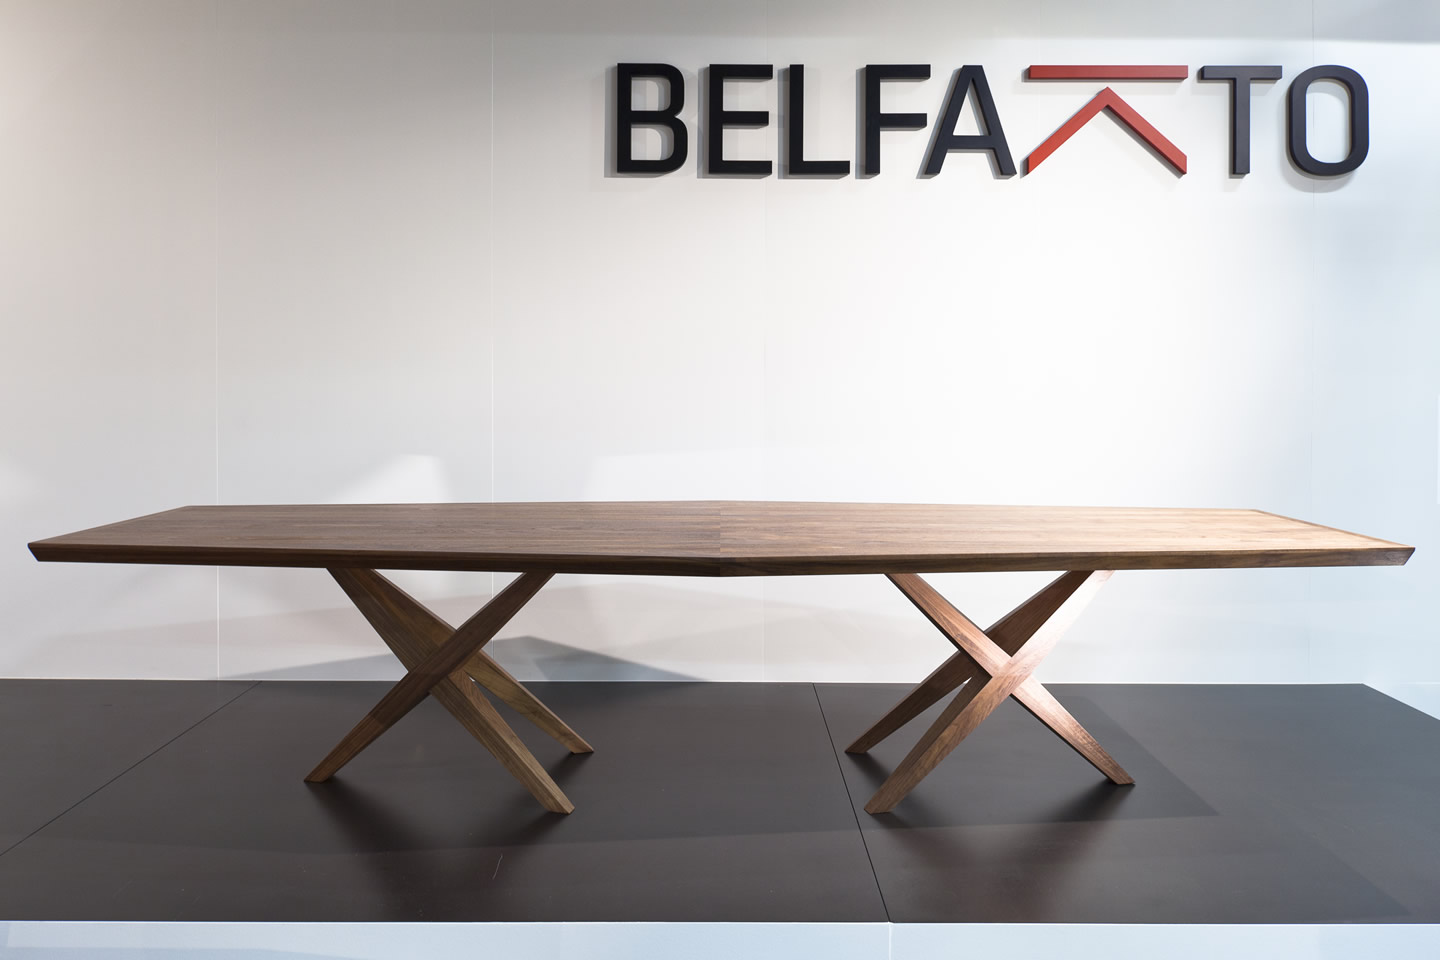 BELFAKTO<br>tables made with passion